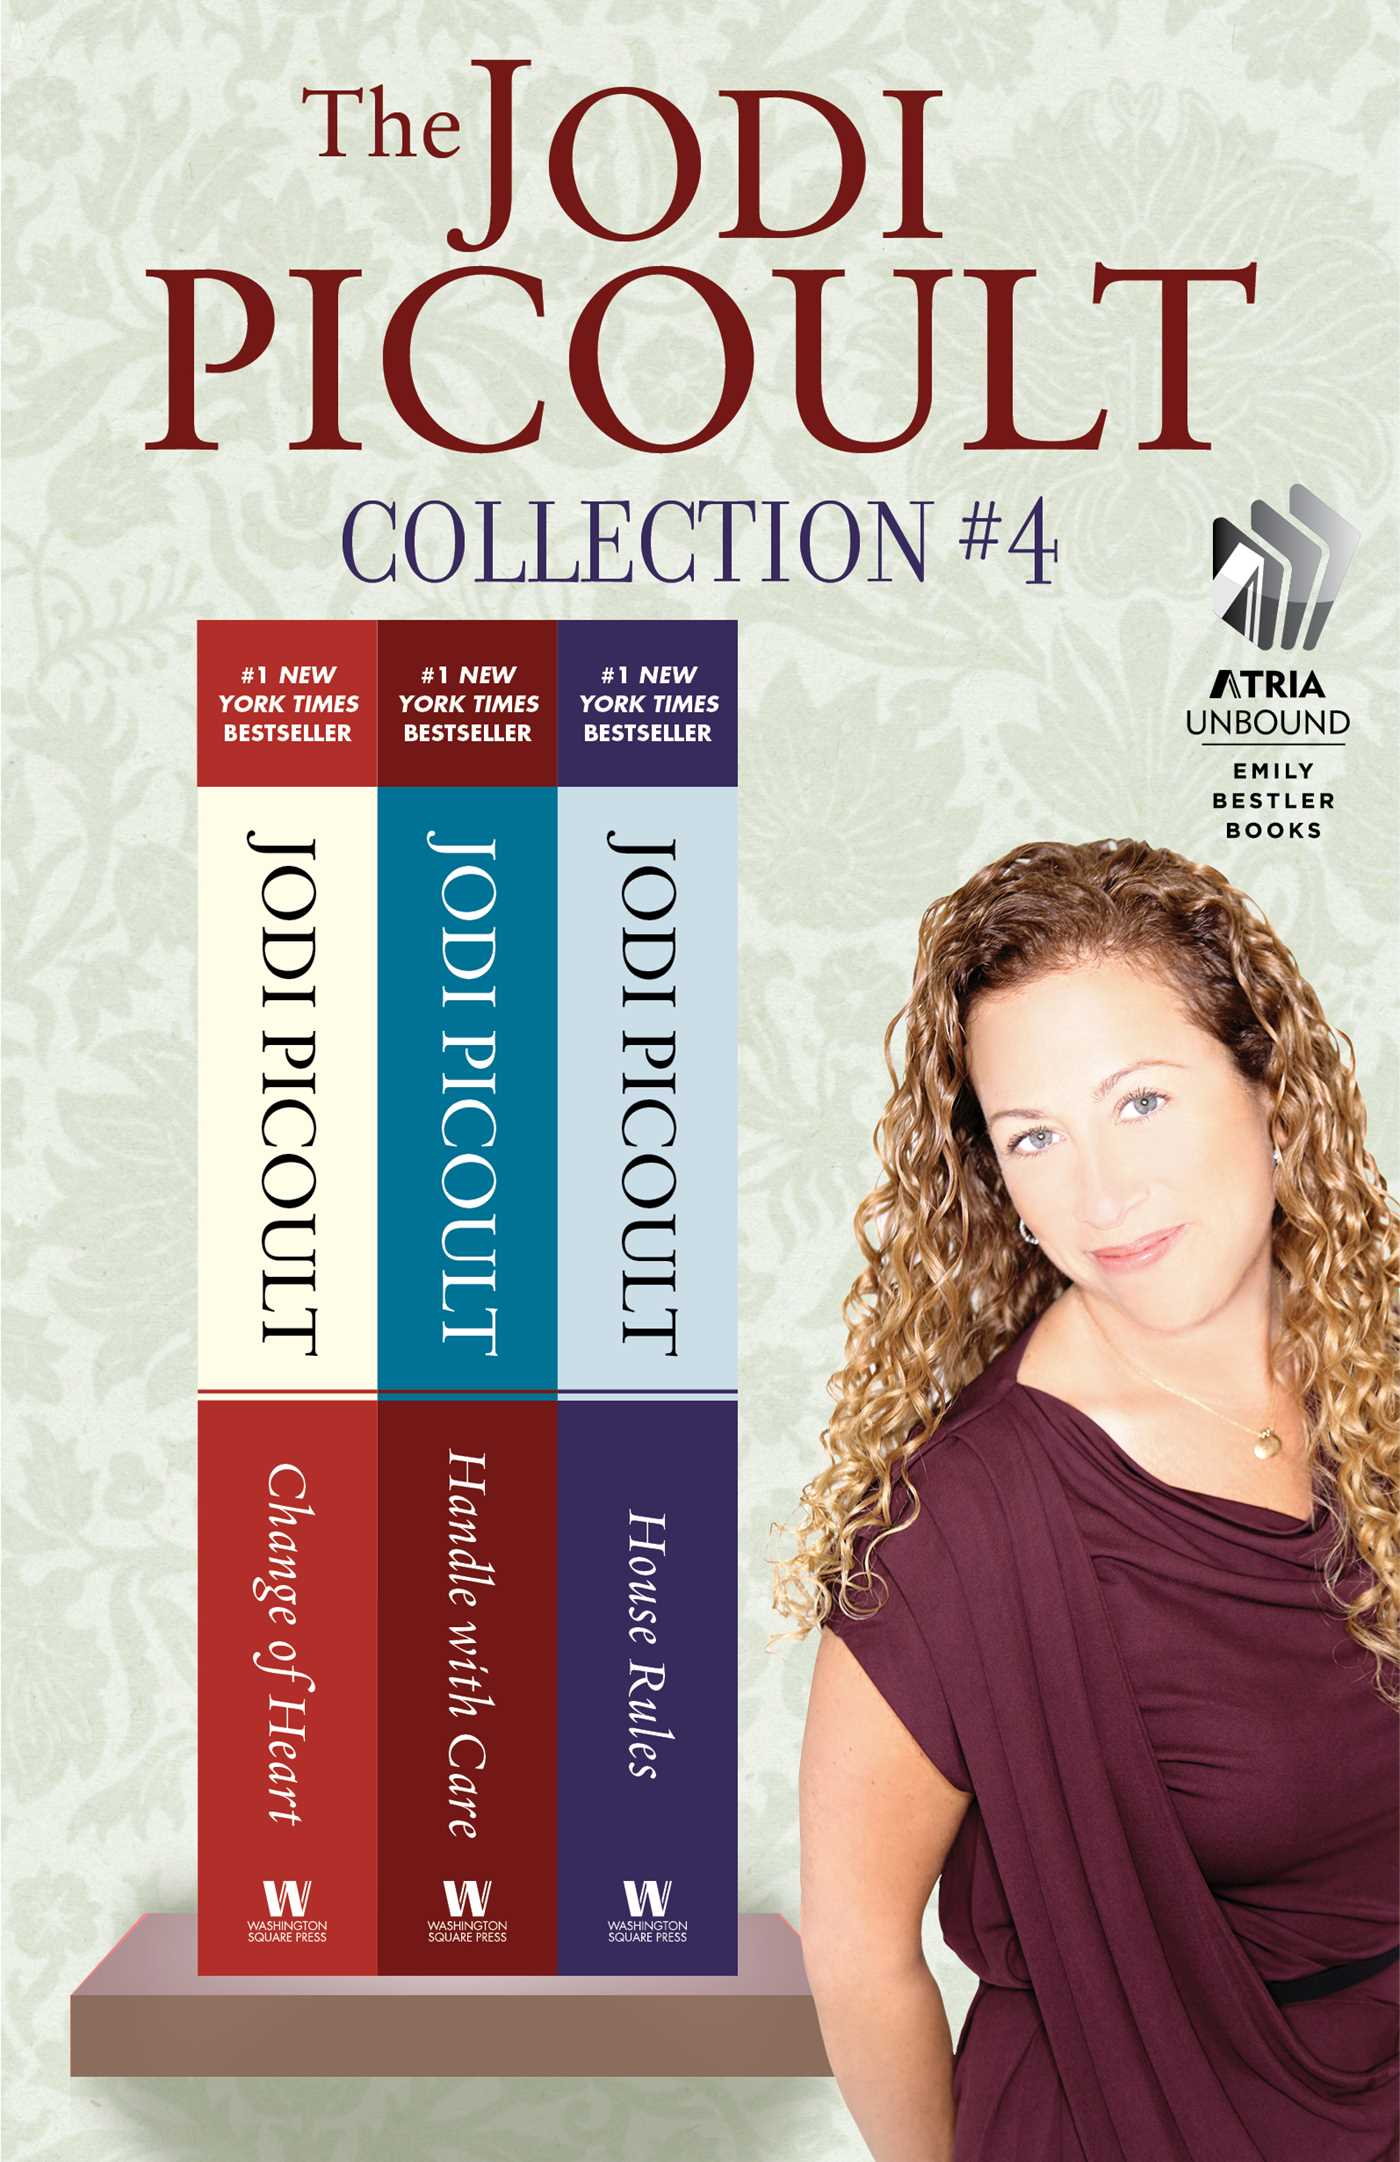 The-jodi-picoult-collection-4-9781476703893_hr